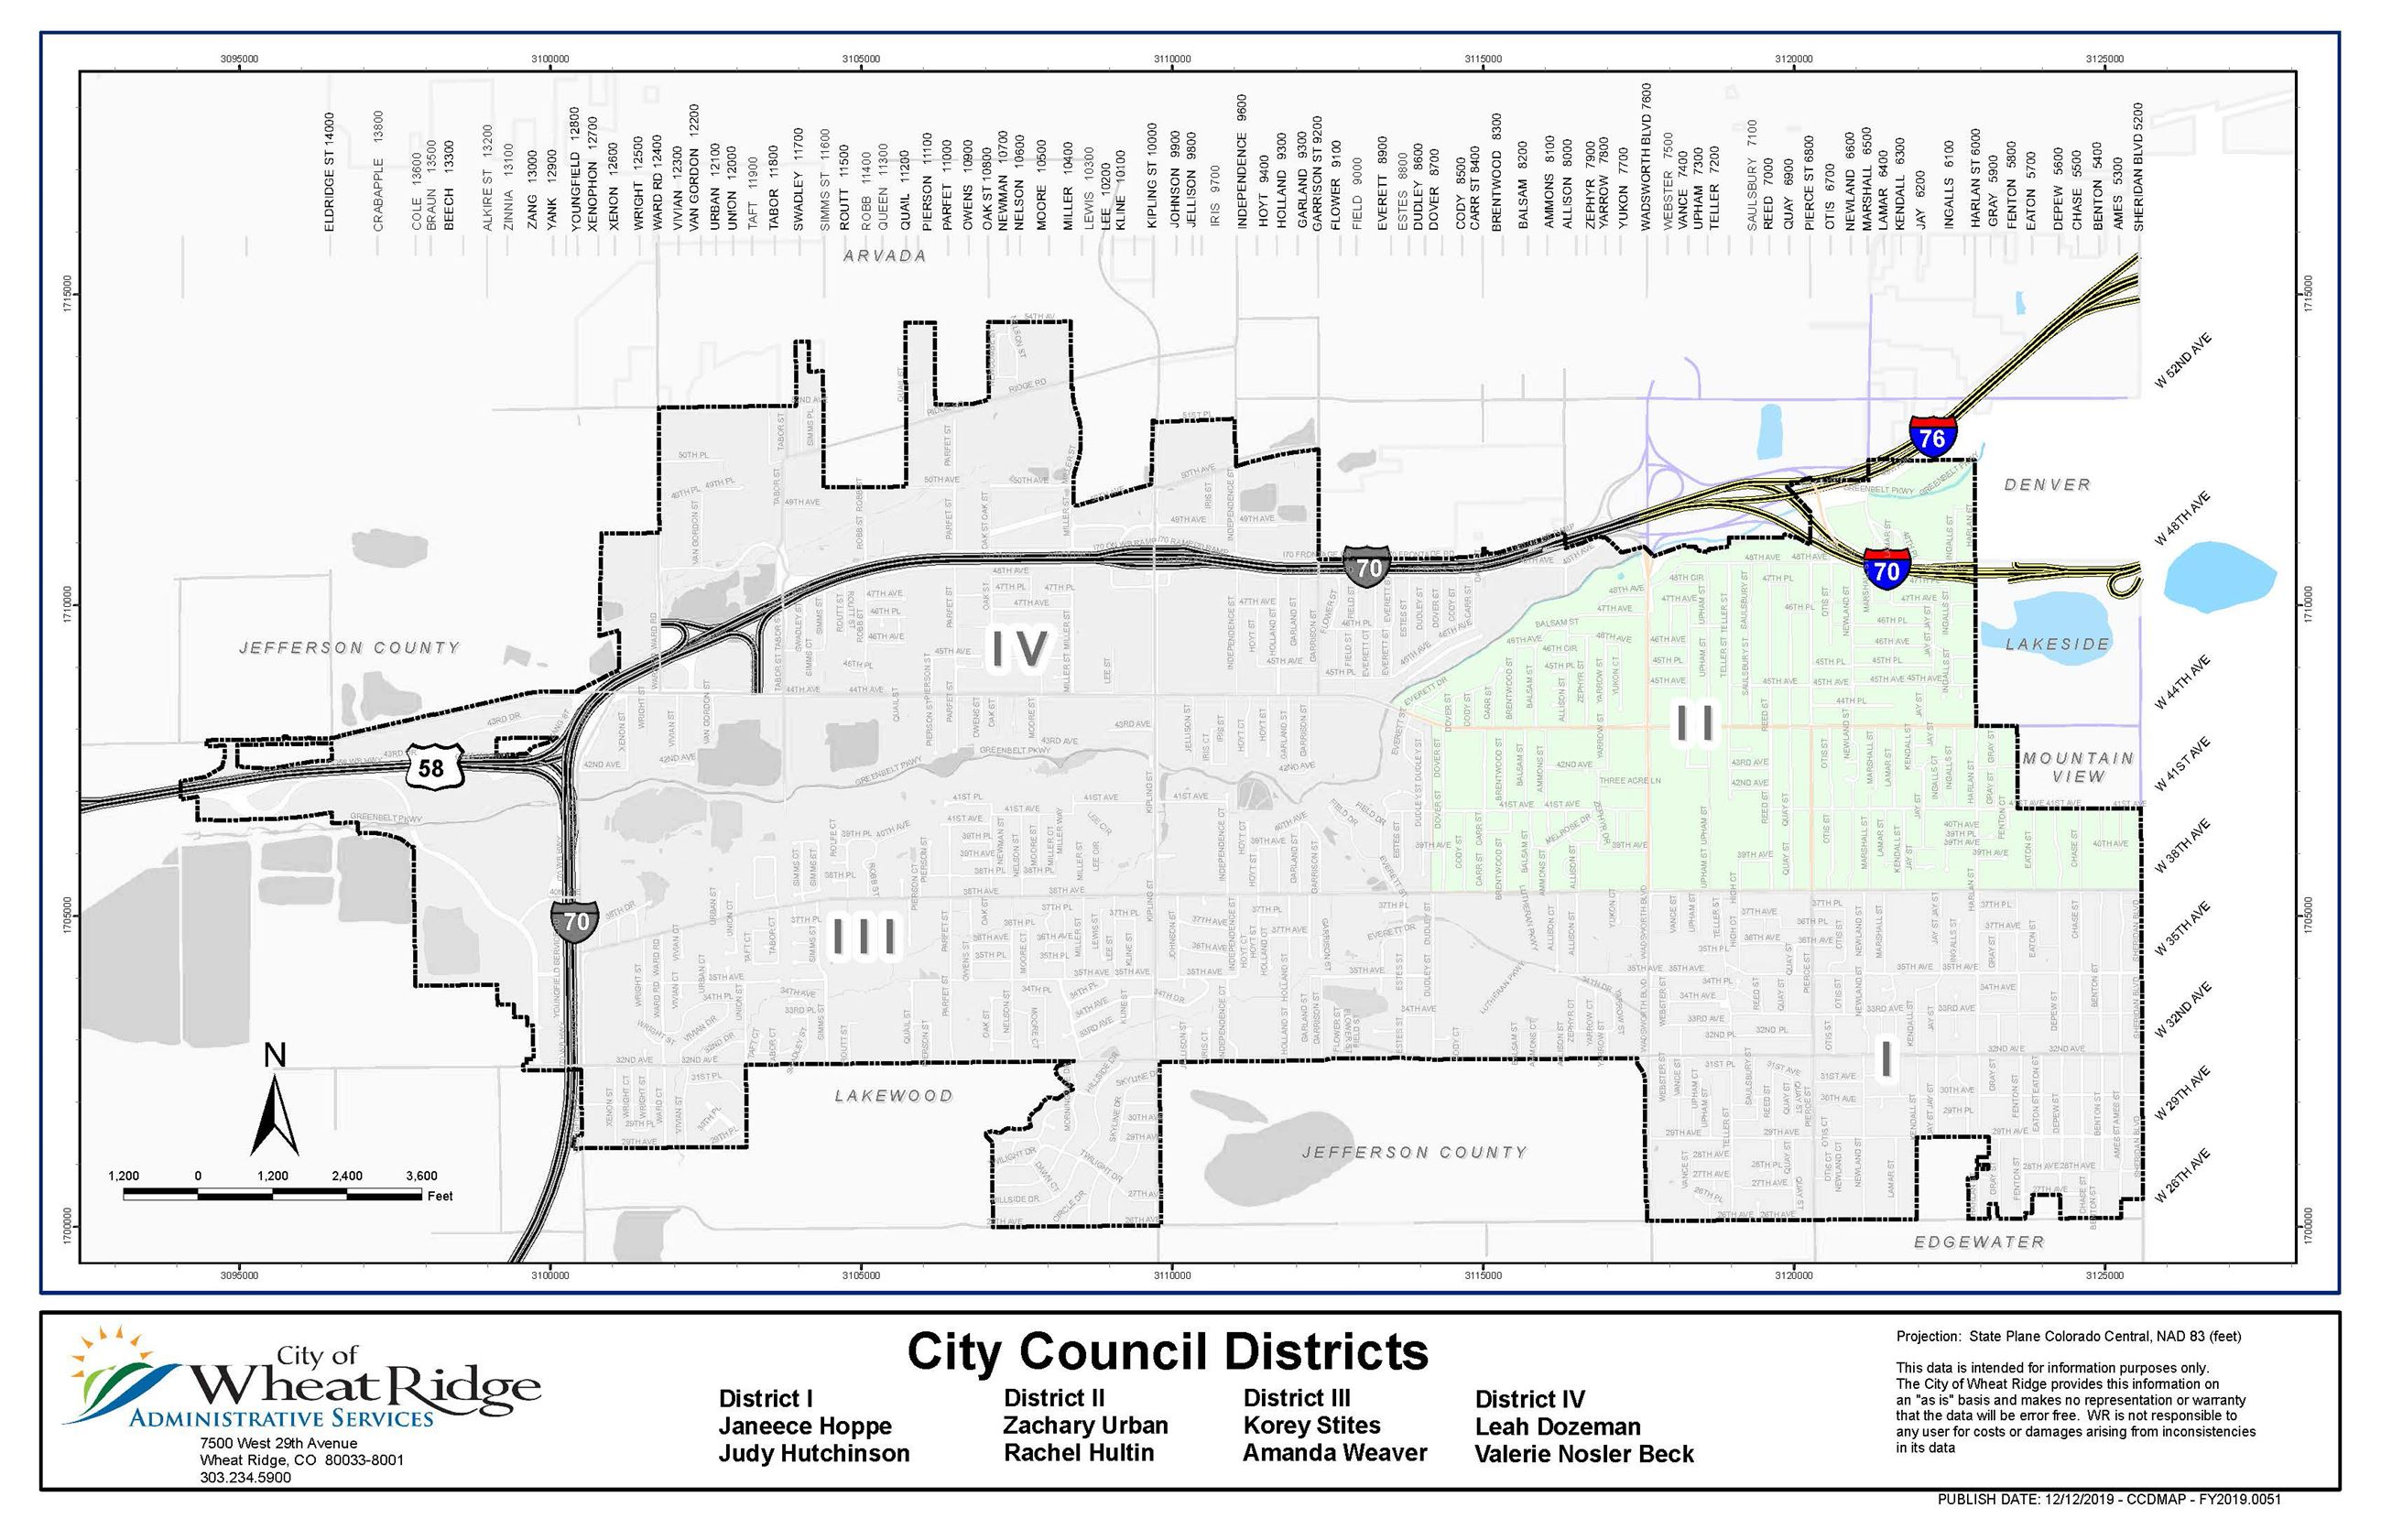 Council District II